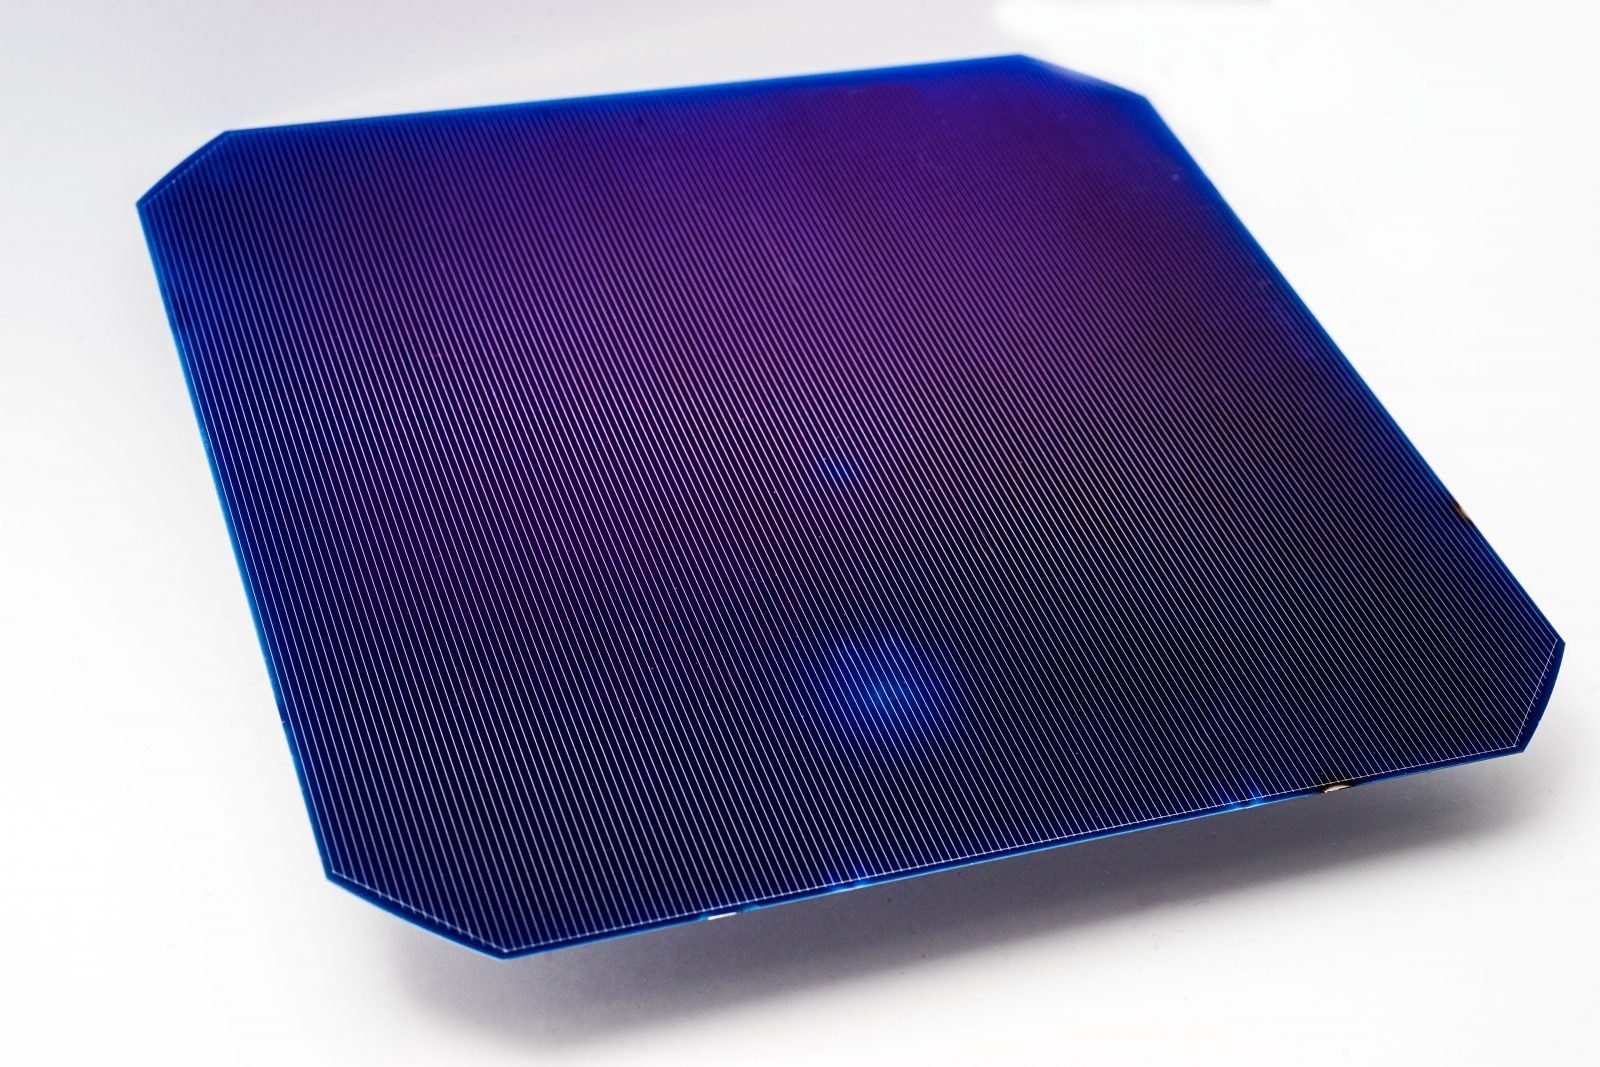 Imec Demonstrates Highly Efficient Bifacial Solar Cells with near 100% Bifaciality